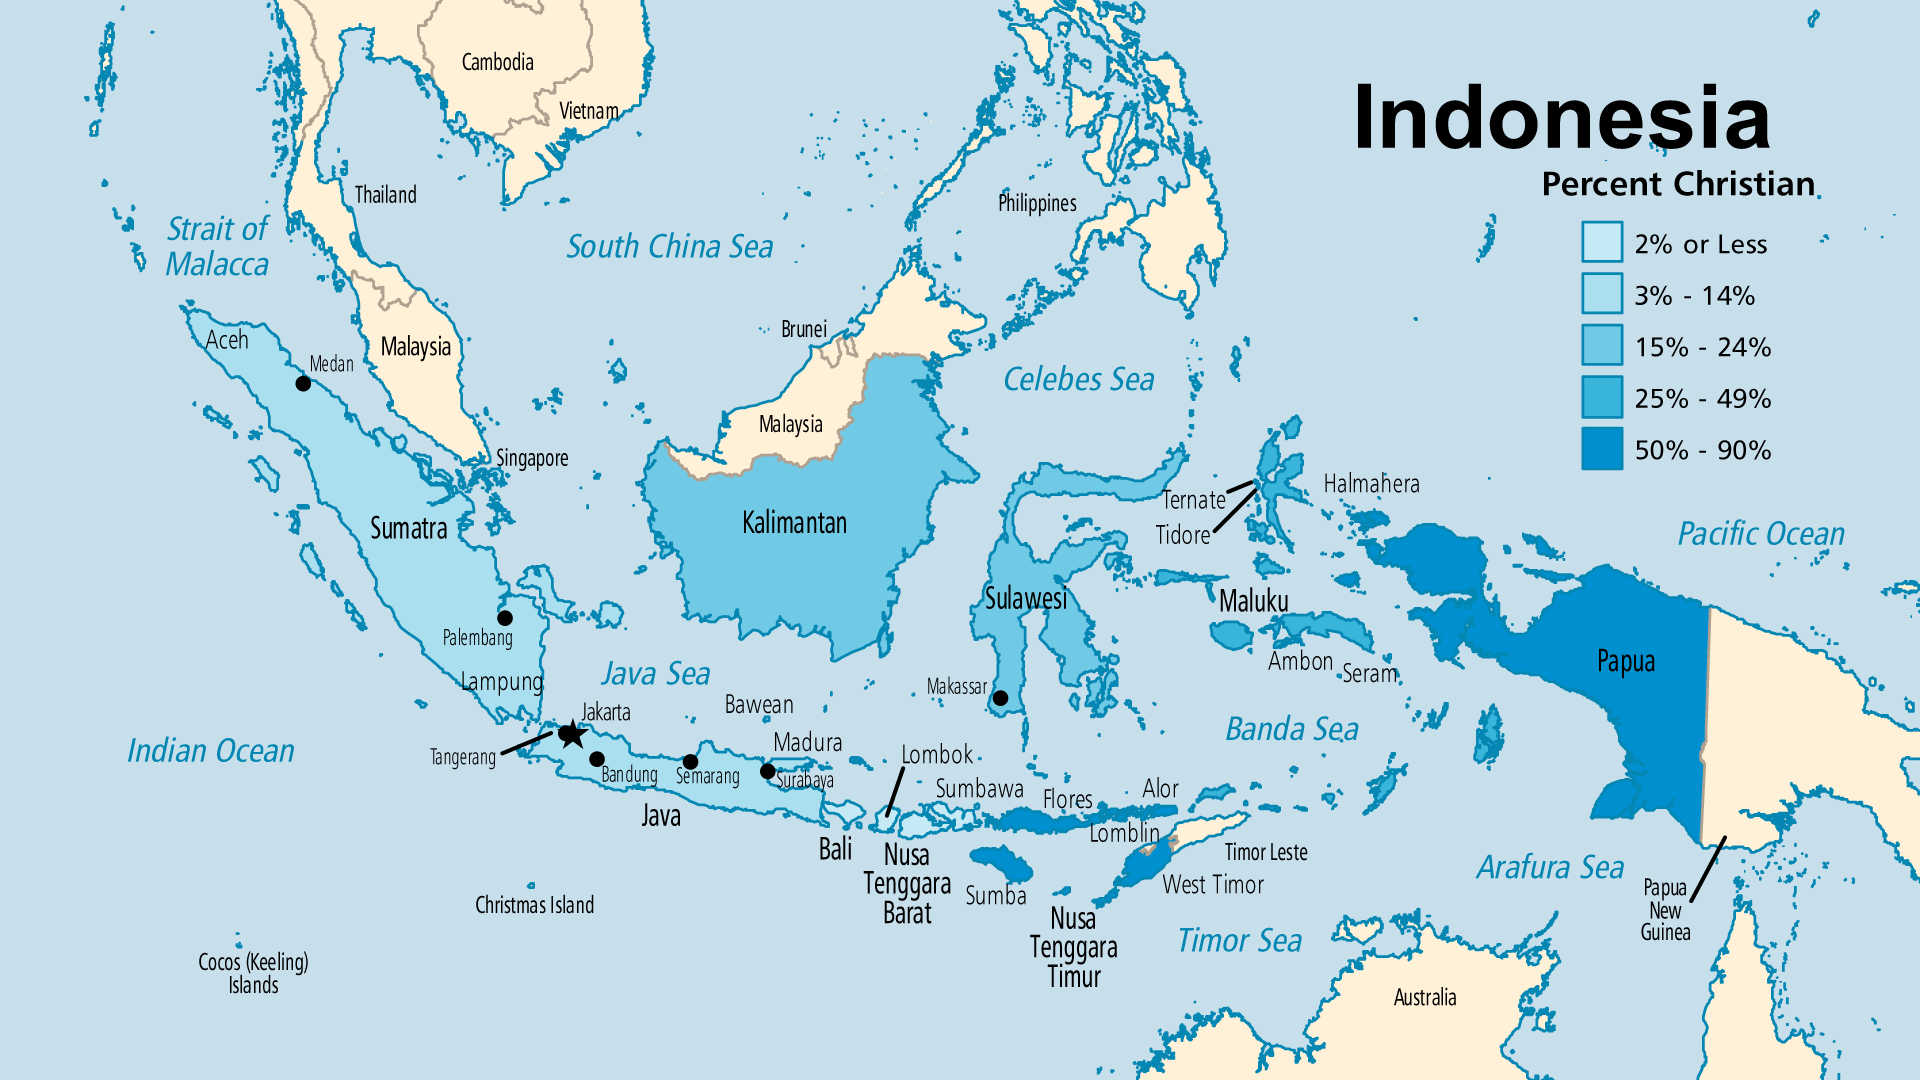 Detailed Map for Indonesia